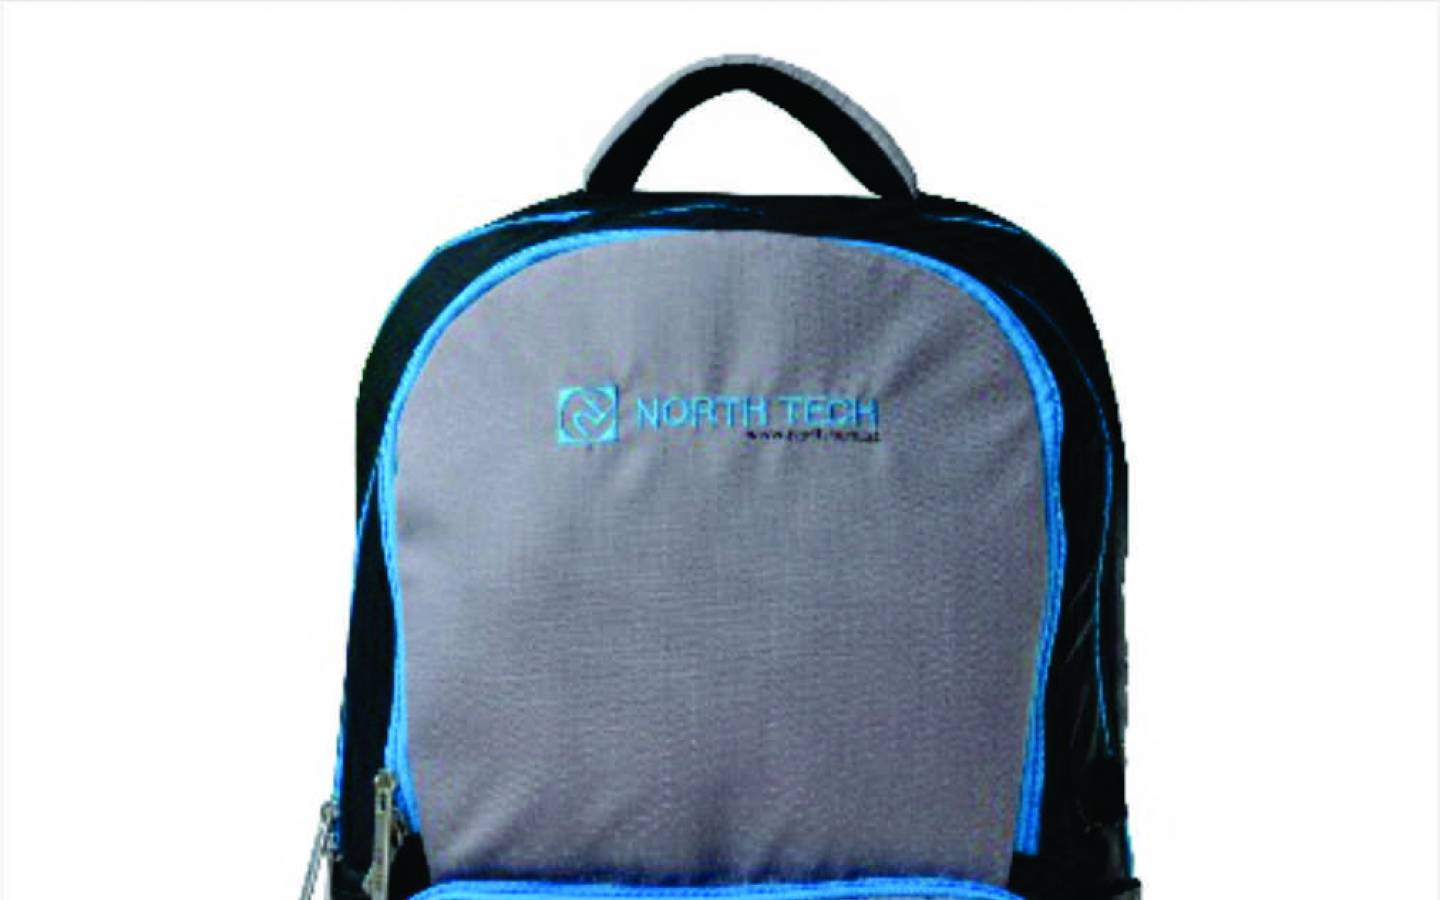 Mochila TED-15B para notebook 15.6 Gris y negro con detalles celeste North Tech